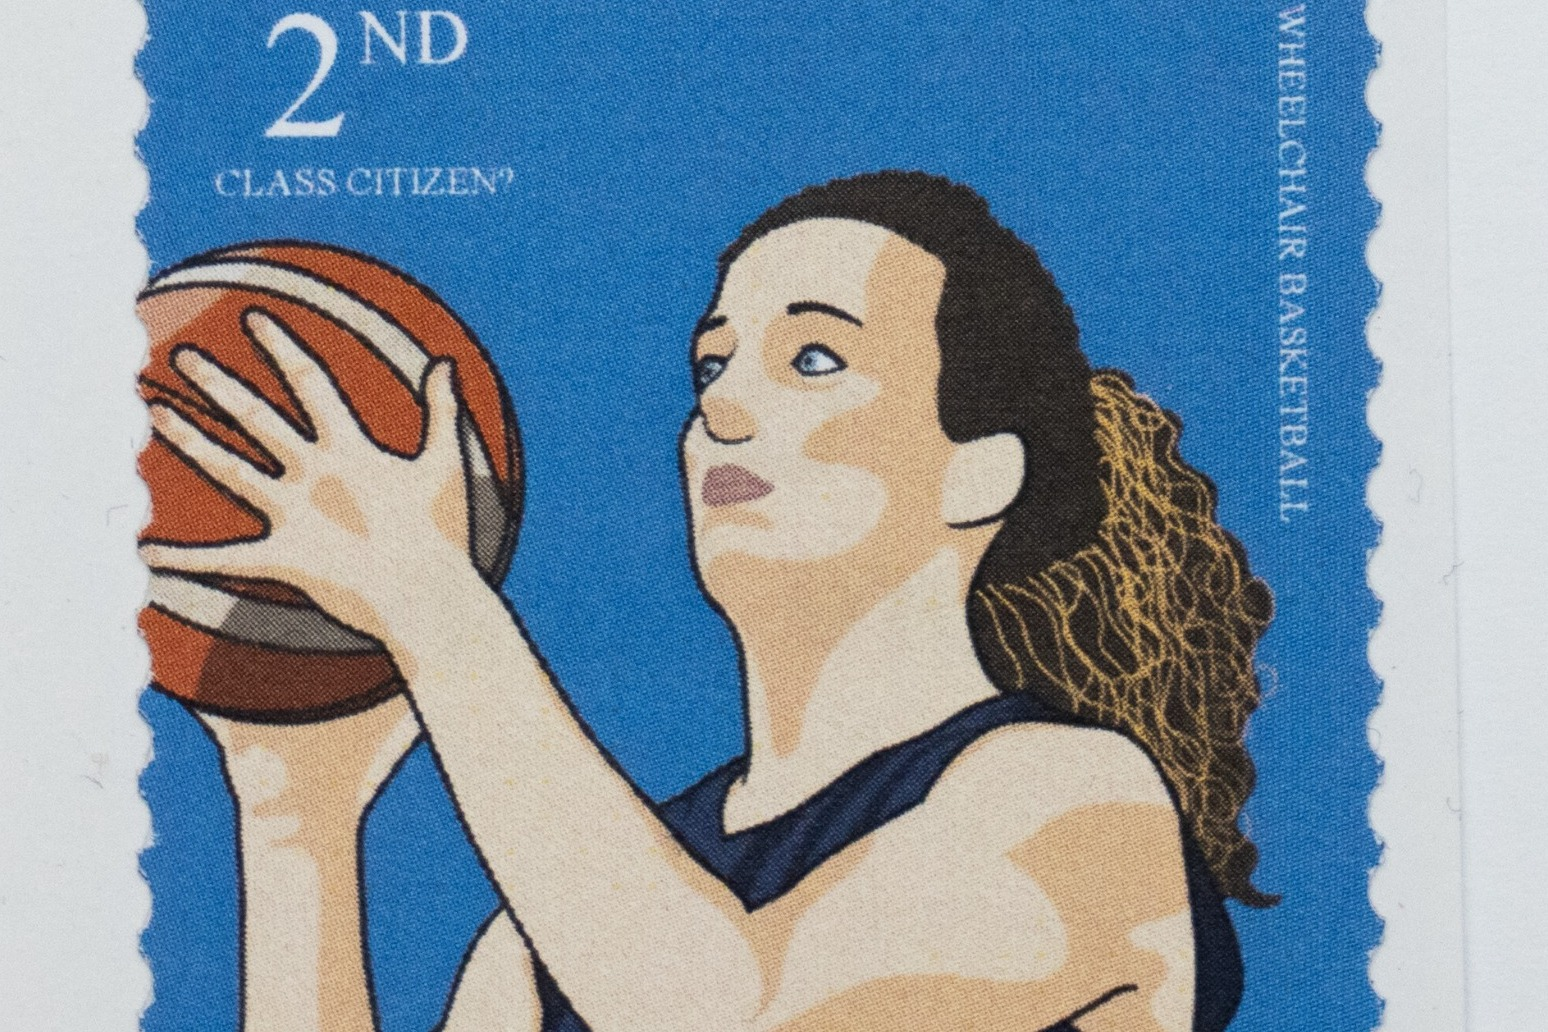 Paralympians feature on mock 'second-class' stamps to highlight inequality